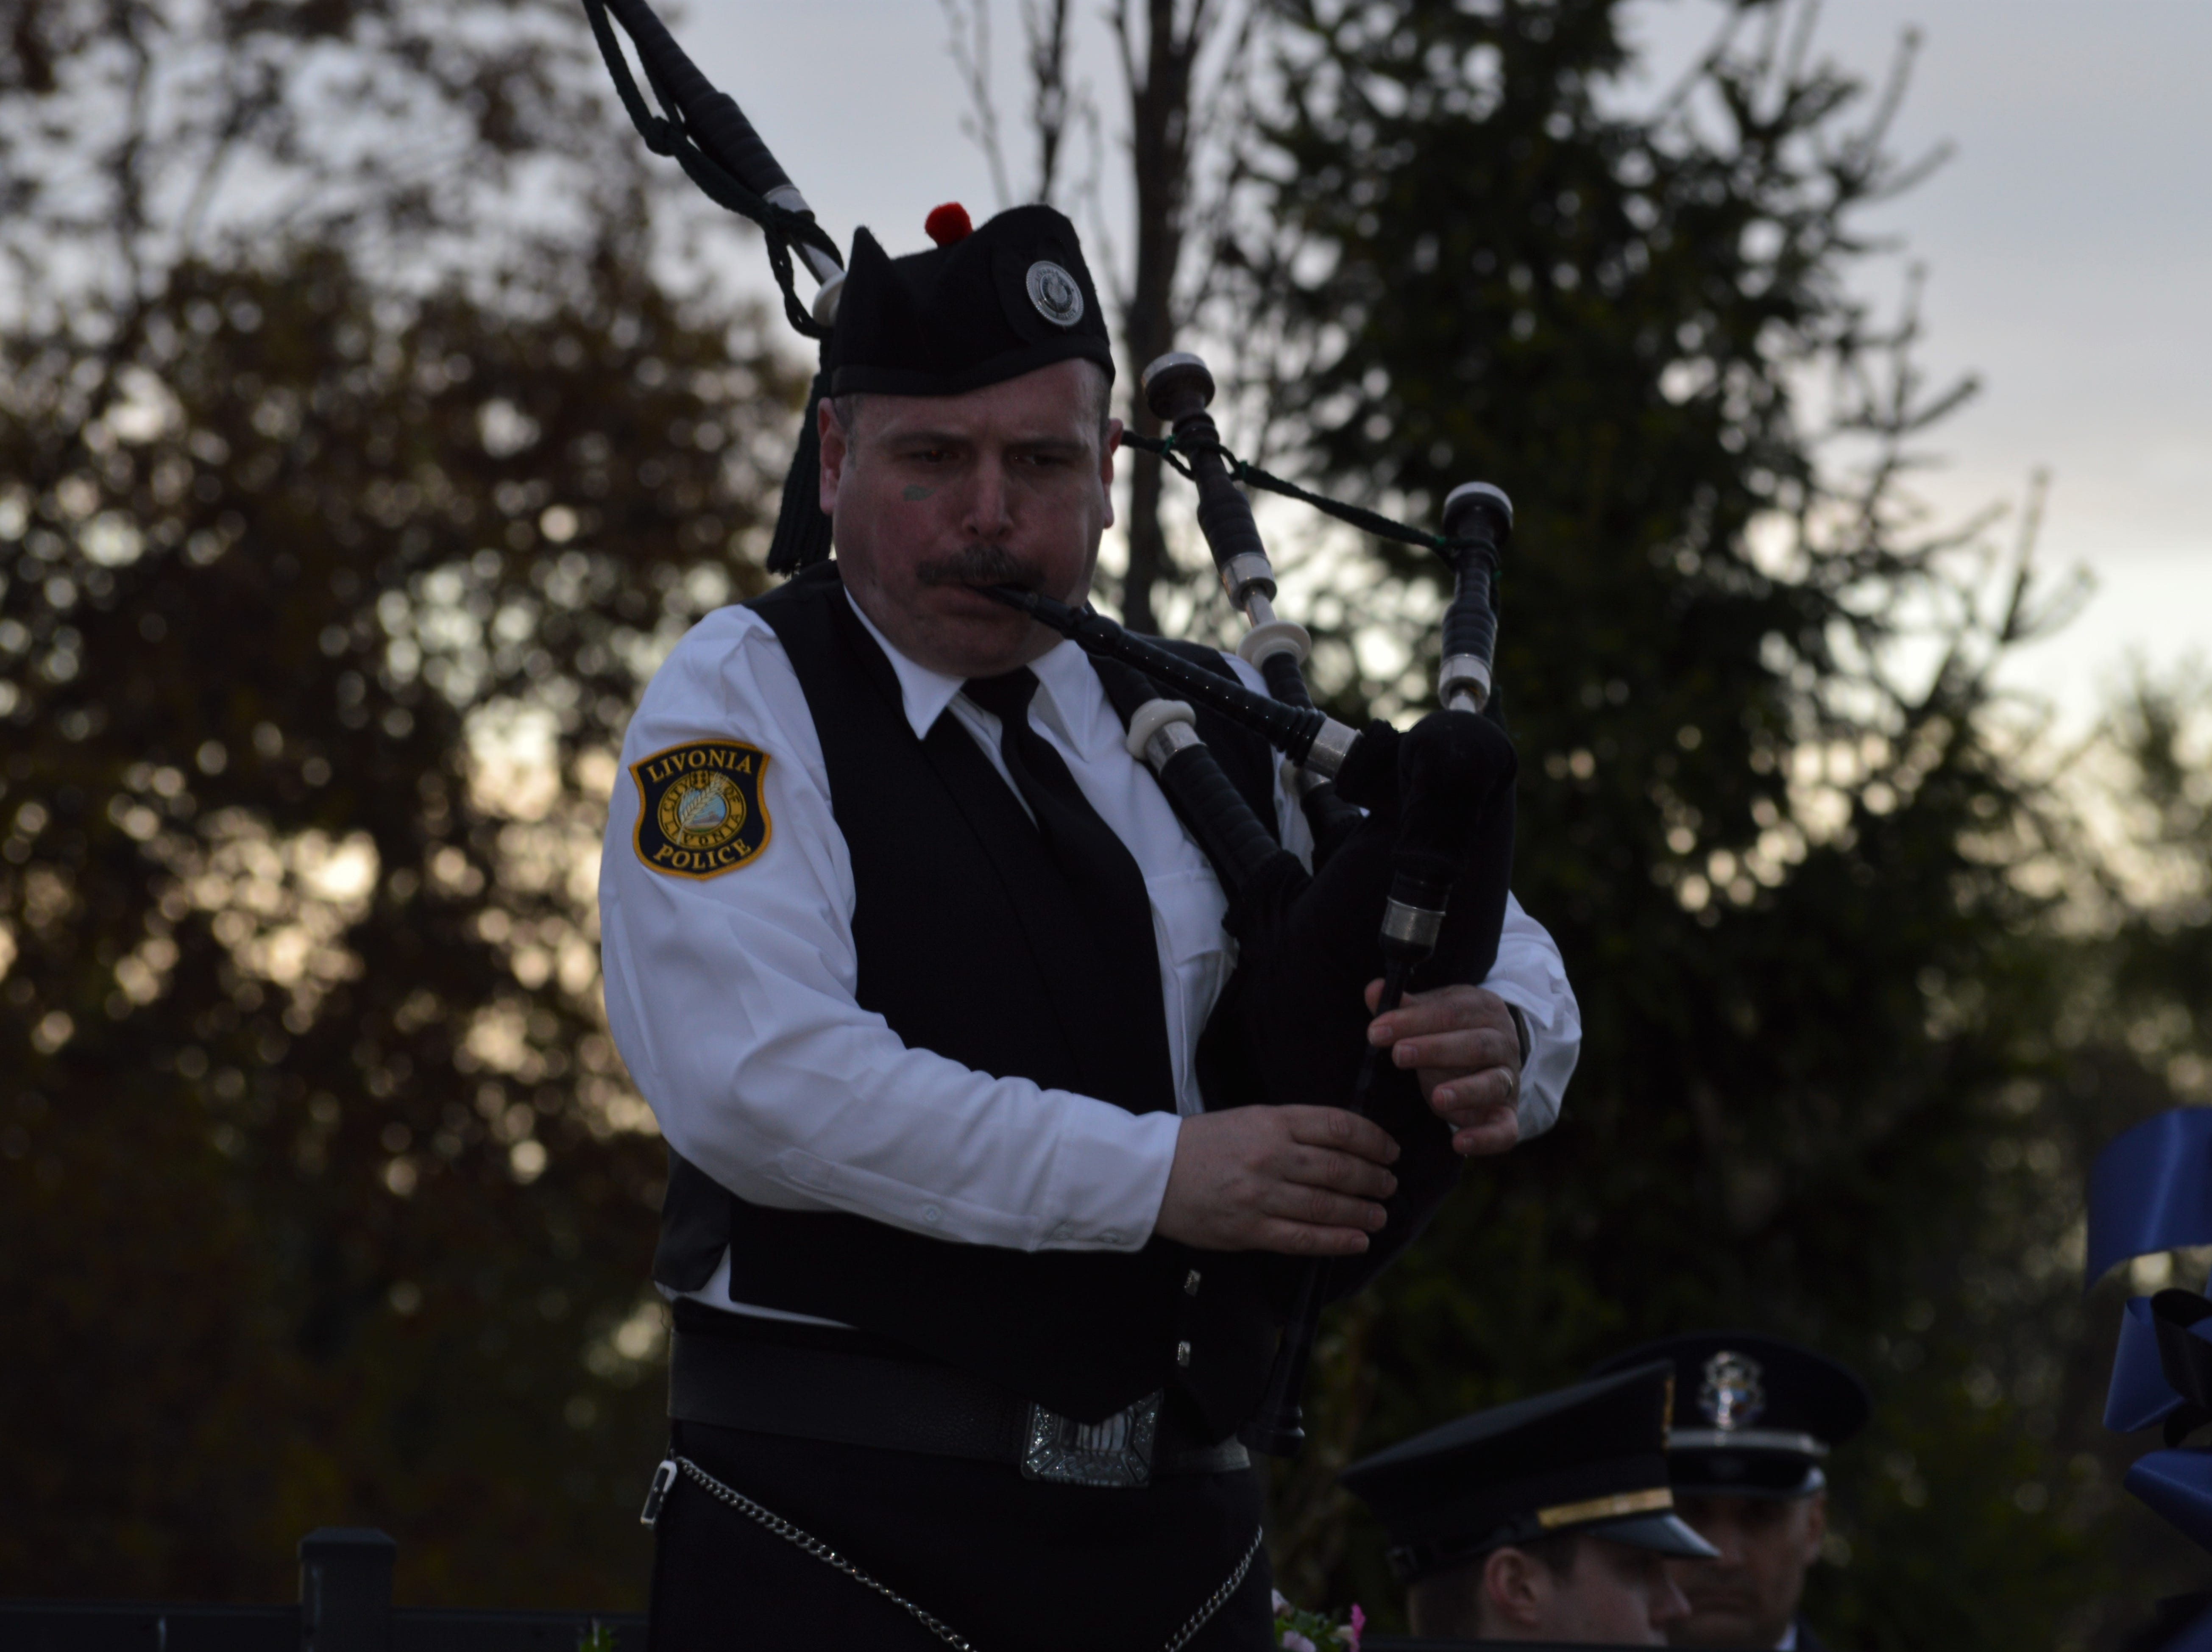 Bagpipes were played at the fifth annual Livonia Police Memorial Ceremony at Larry Nehasil Park on Tuesday, May 7, 2019.